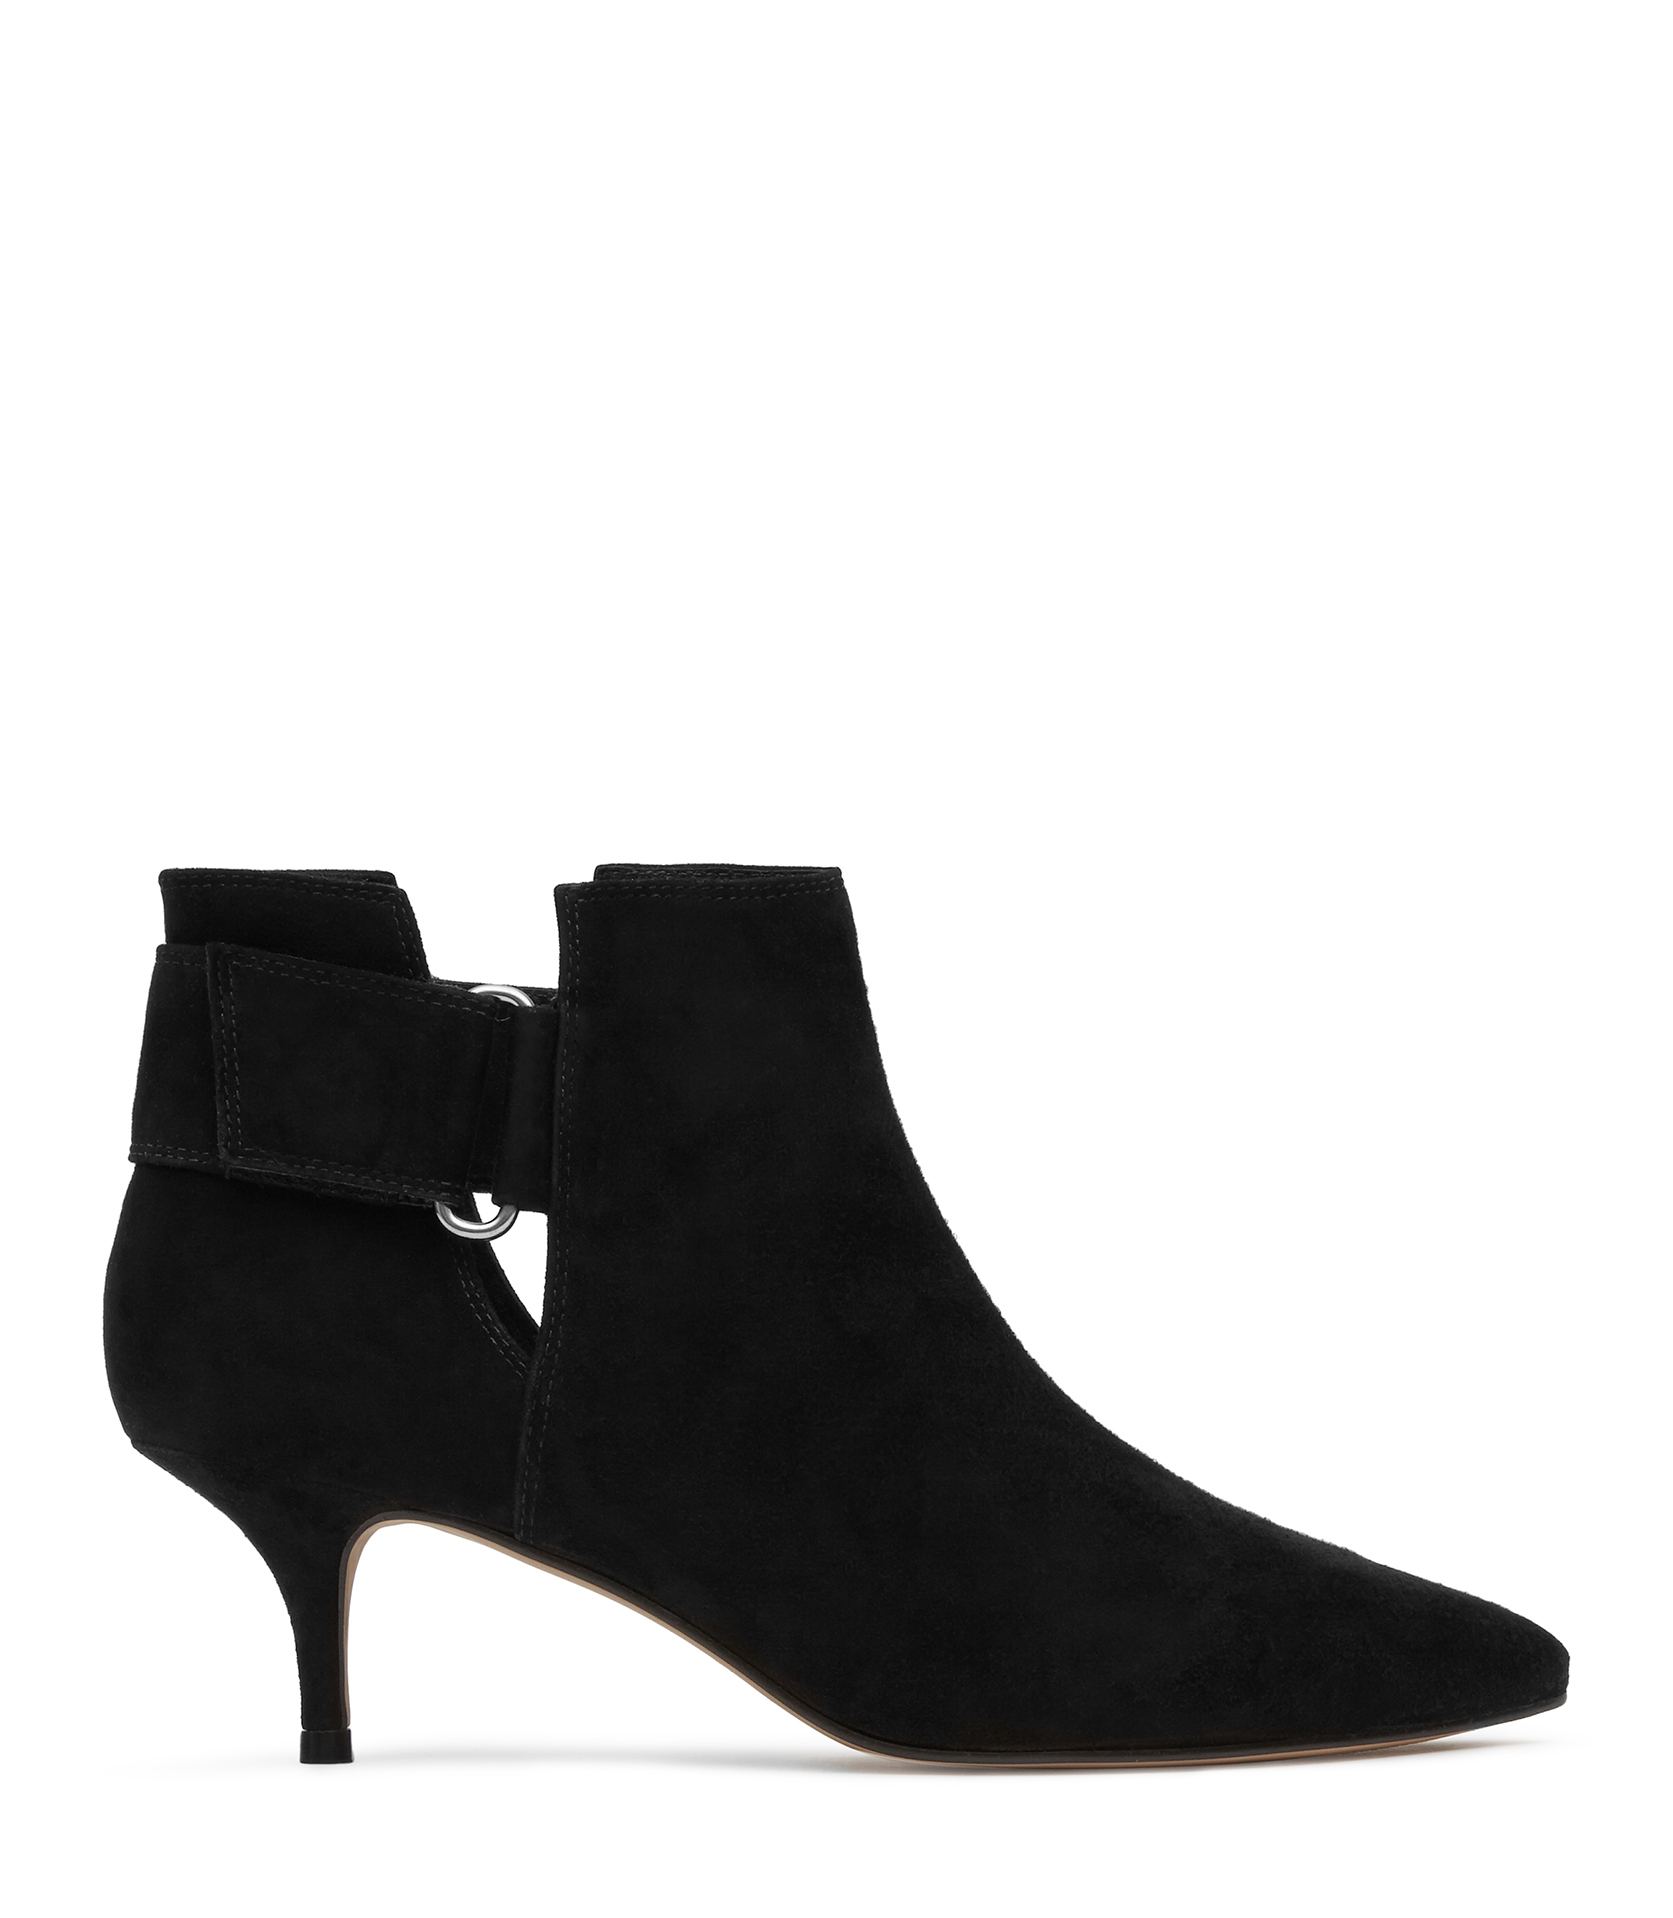 lyst reiss tiffany kitten heel cutout boots in black